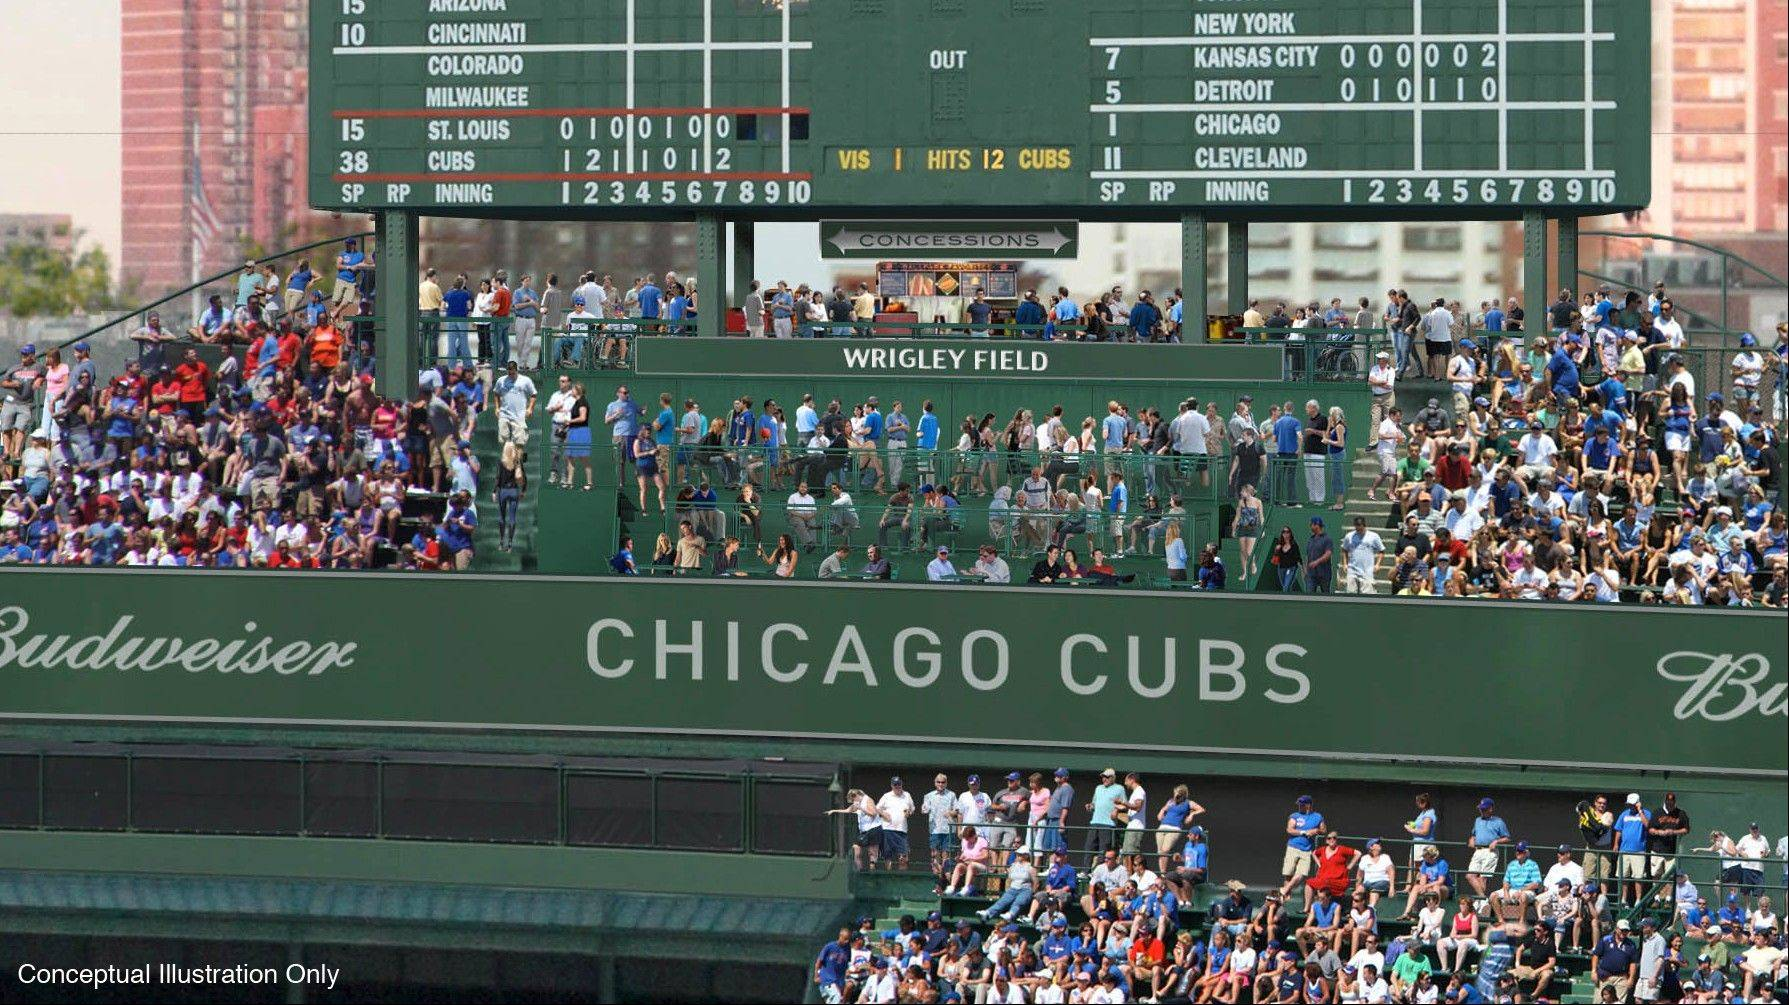 The Cubs have announced their $300 million renovation plan for Wrigley Field, and this is a view of the proposed center-field area.